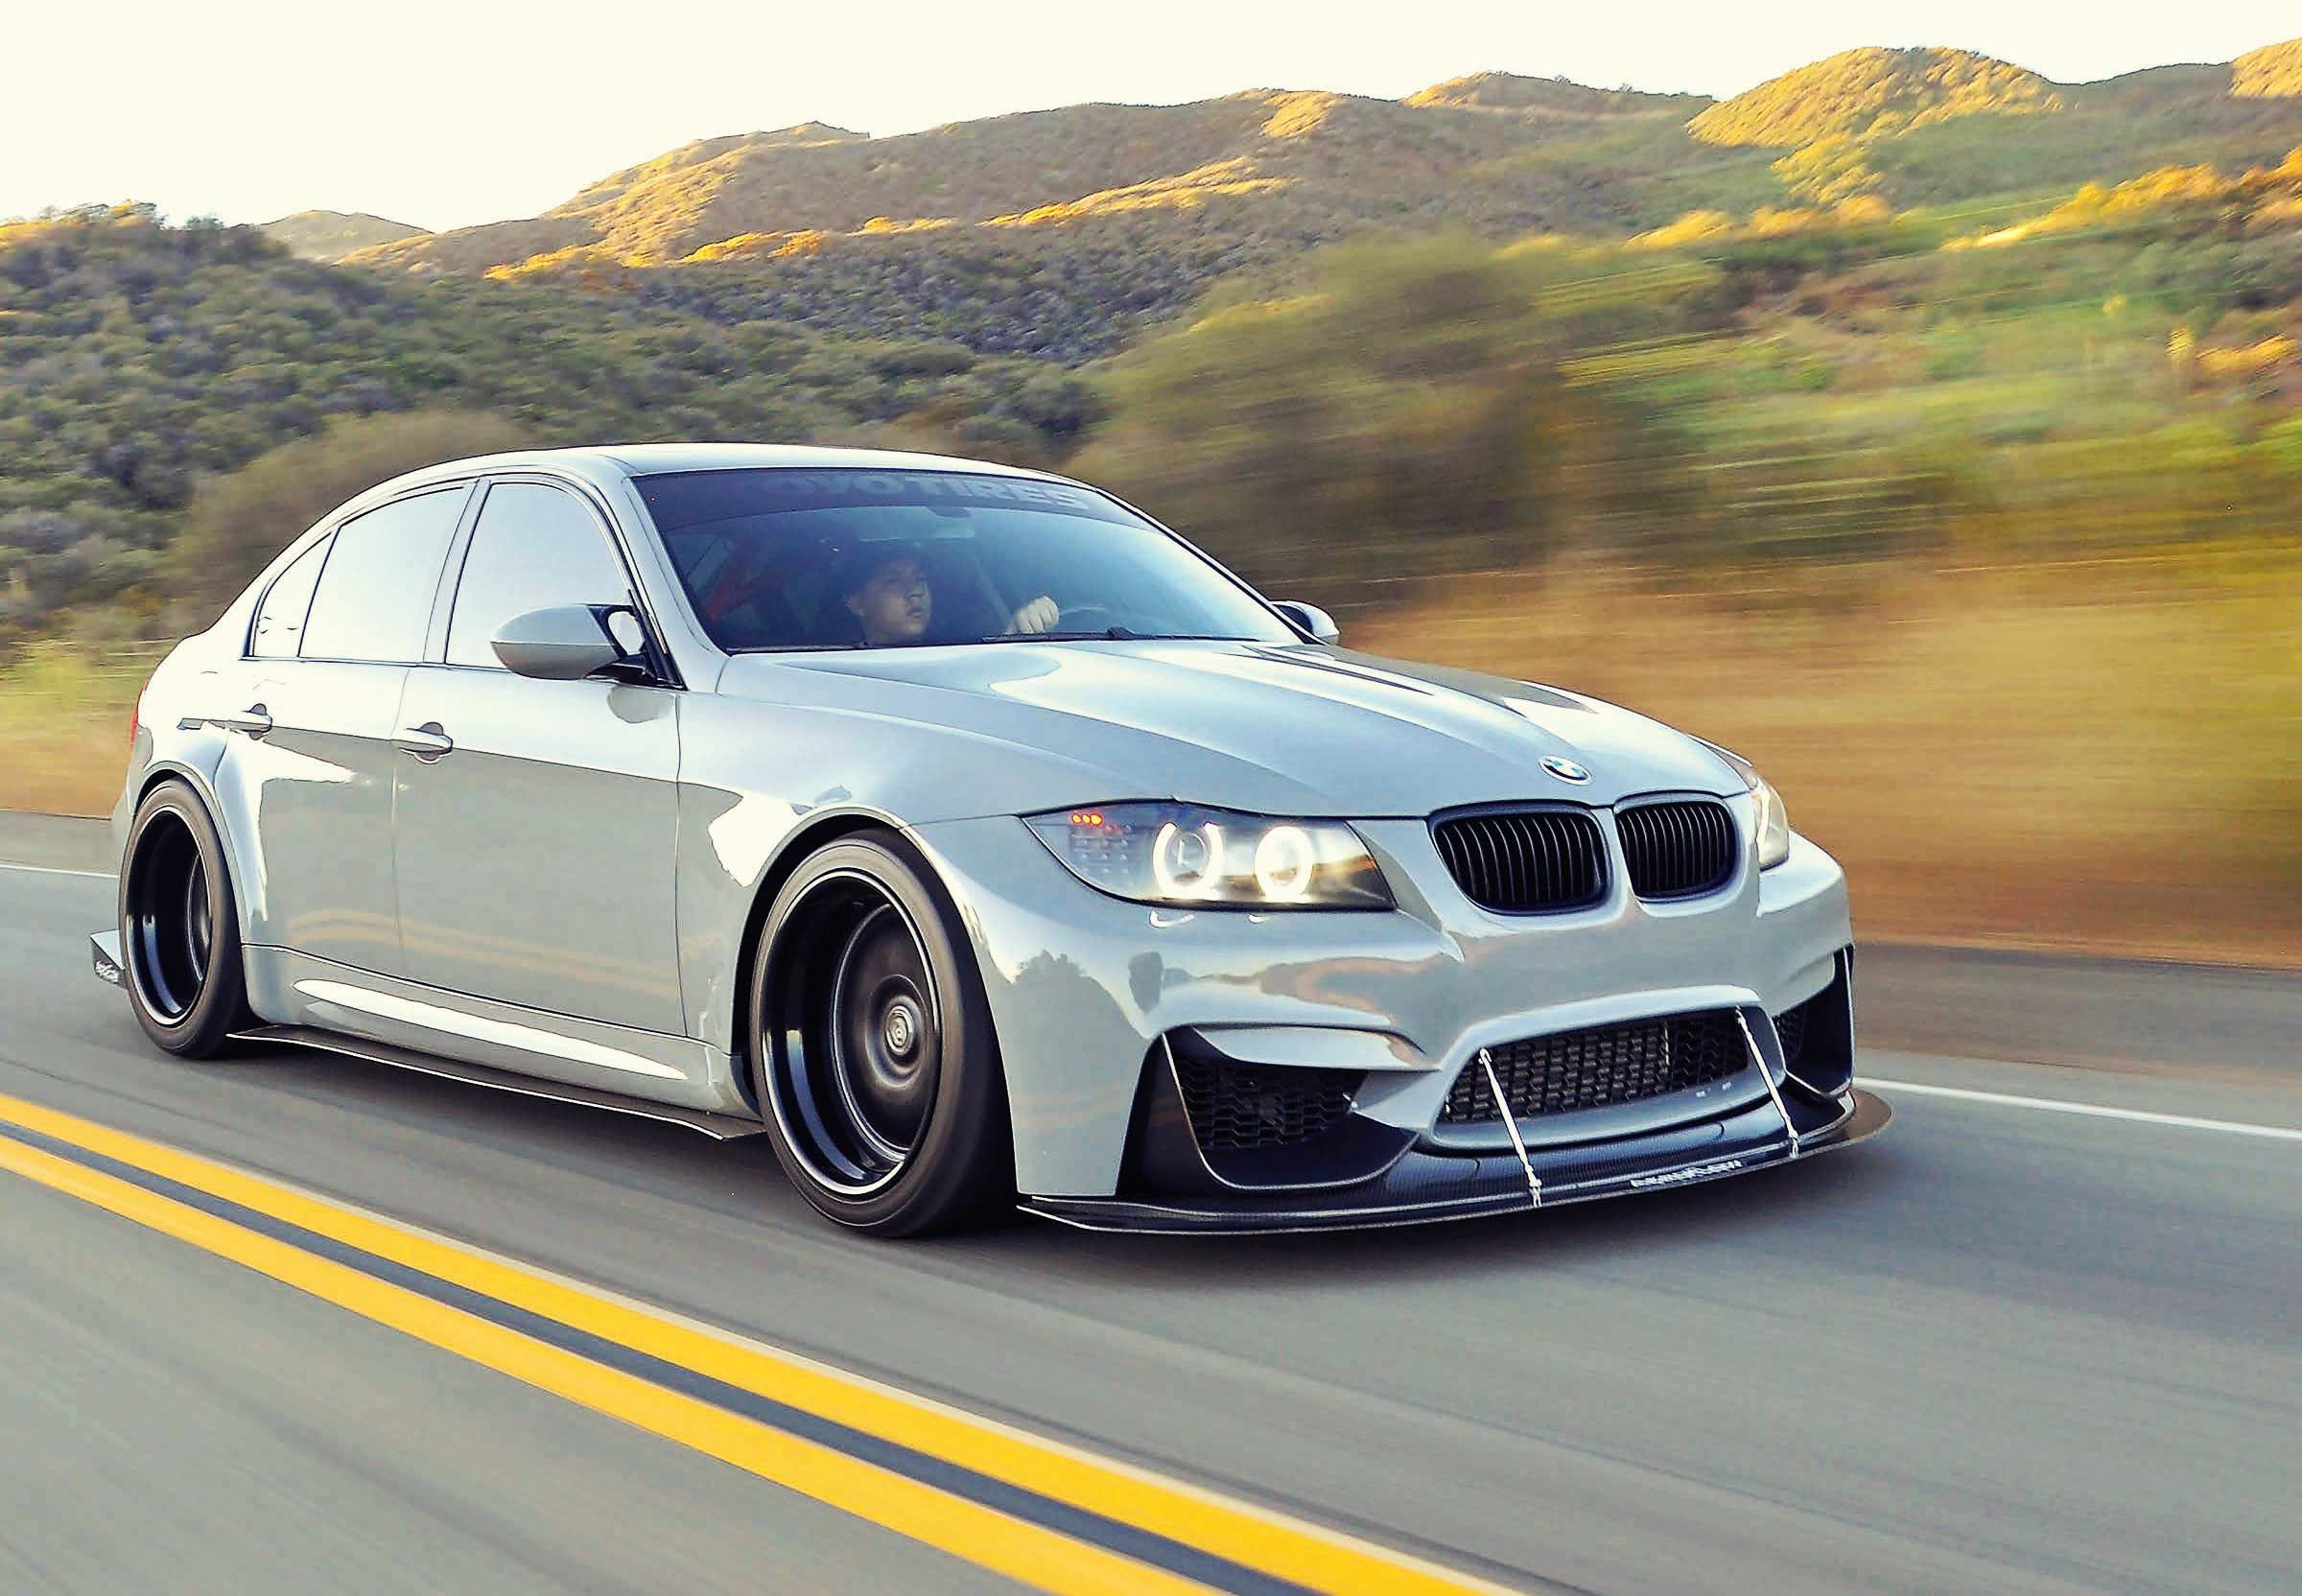 wide body wtcc style bmw 335i e90 euro auto style pinterest bmw cars and bmw s. Black Bedroom Furniture Sets. Home Design Ideas